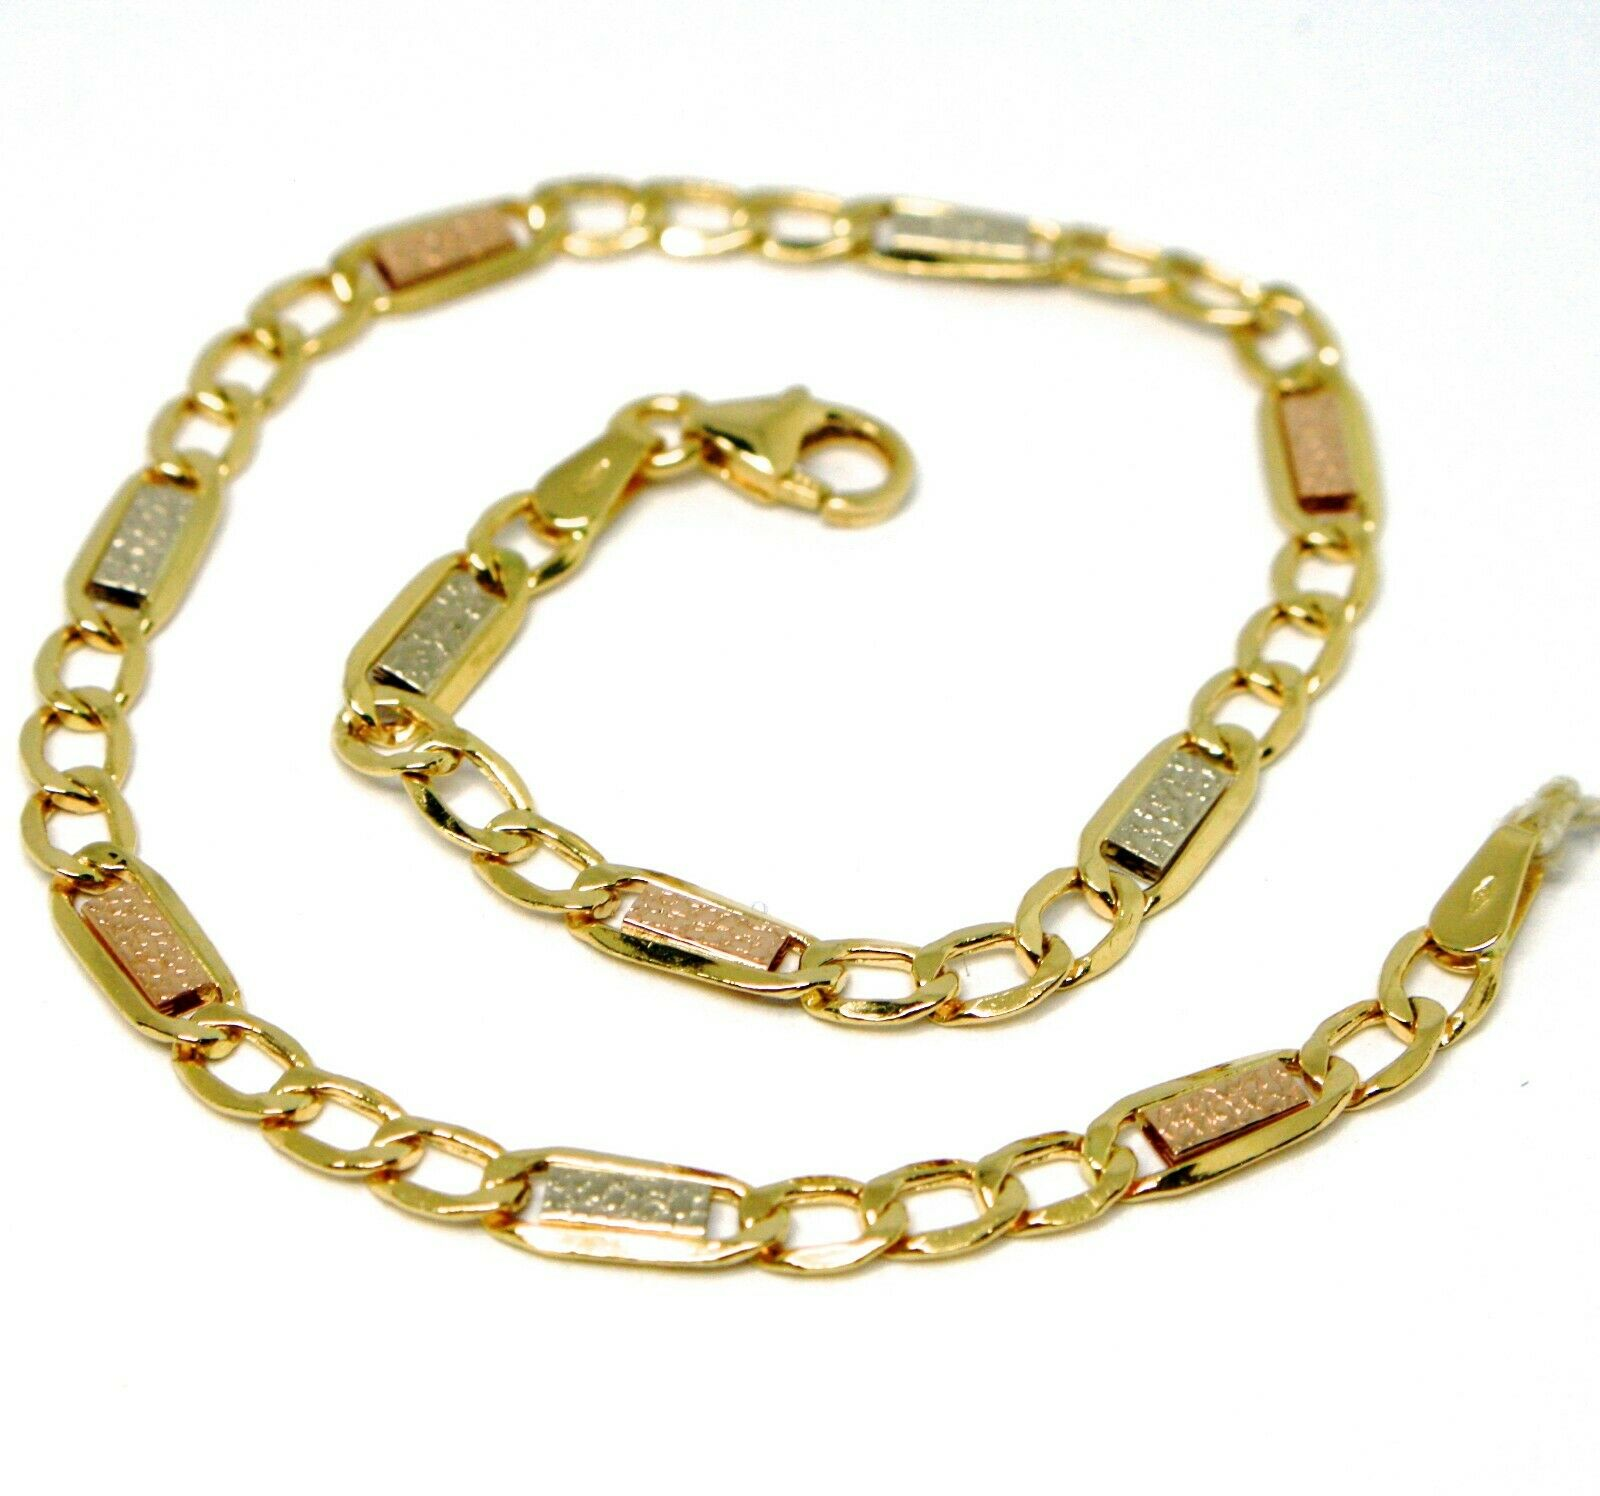 BRACELET YELLOW gold WHITE pink 18K 750, INSERTED RECTANGULAR AND OVALS, BUBBLES